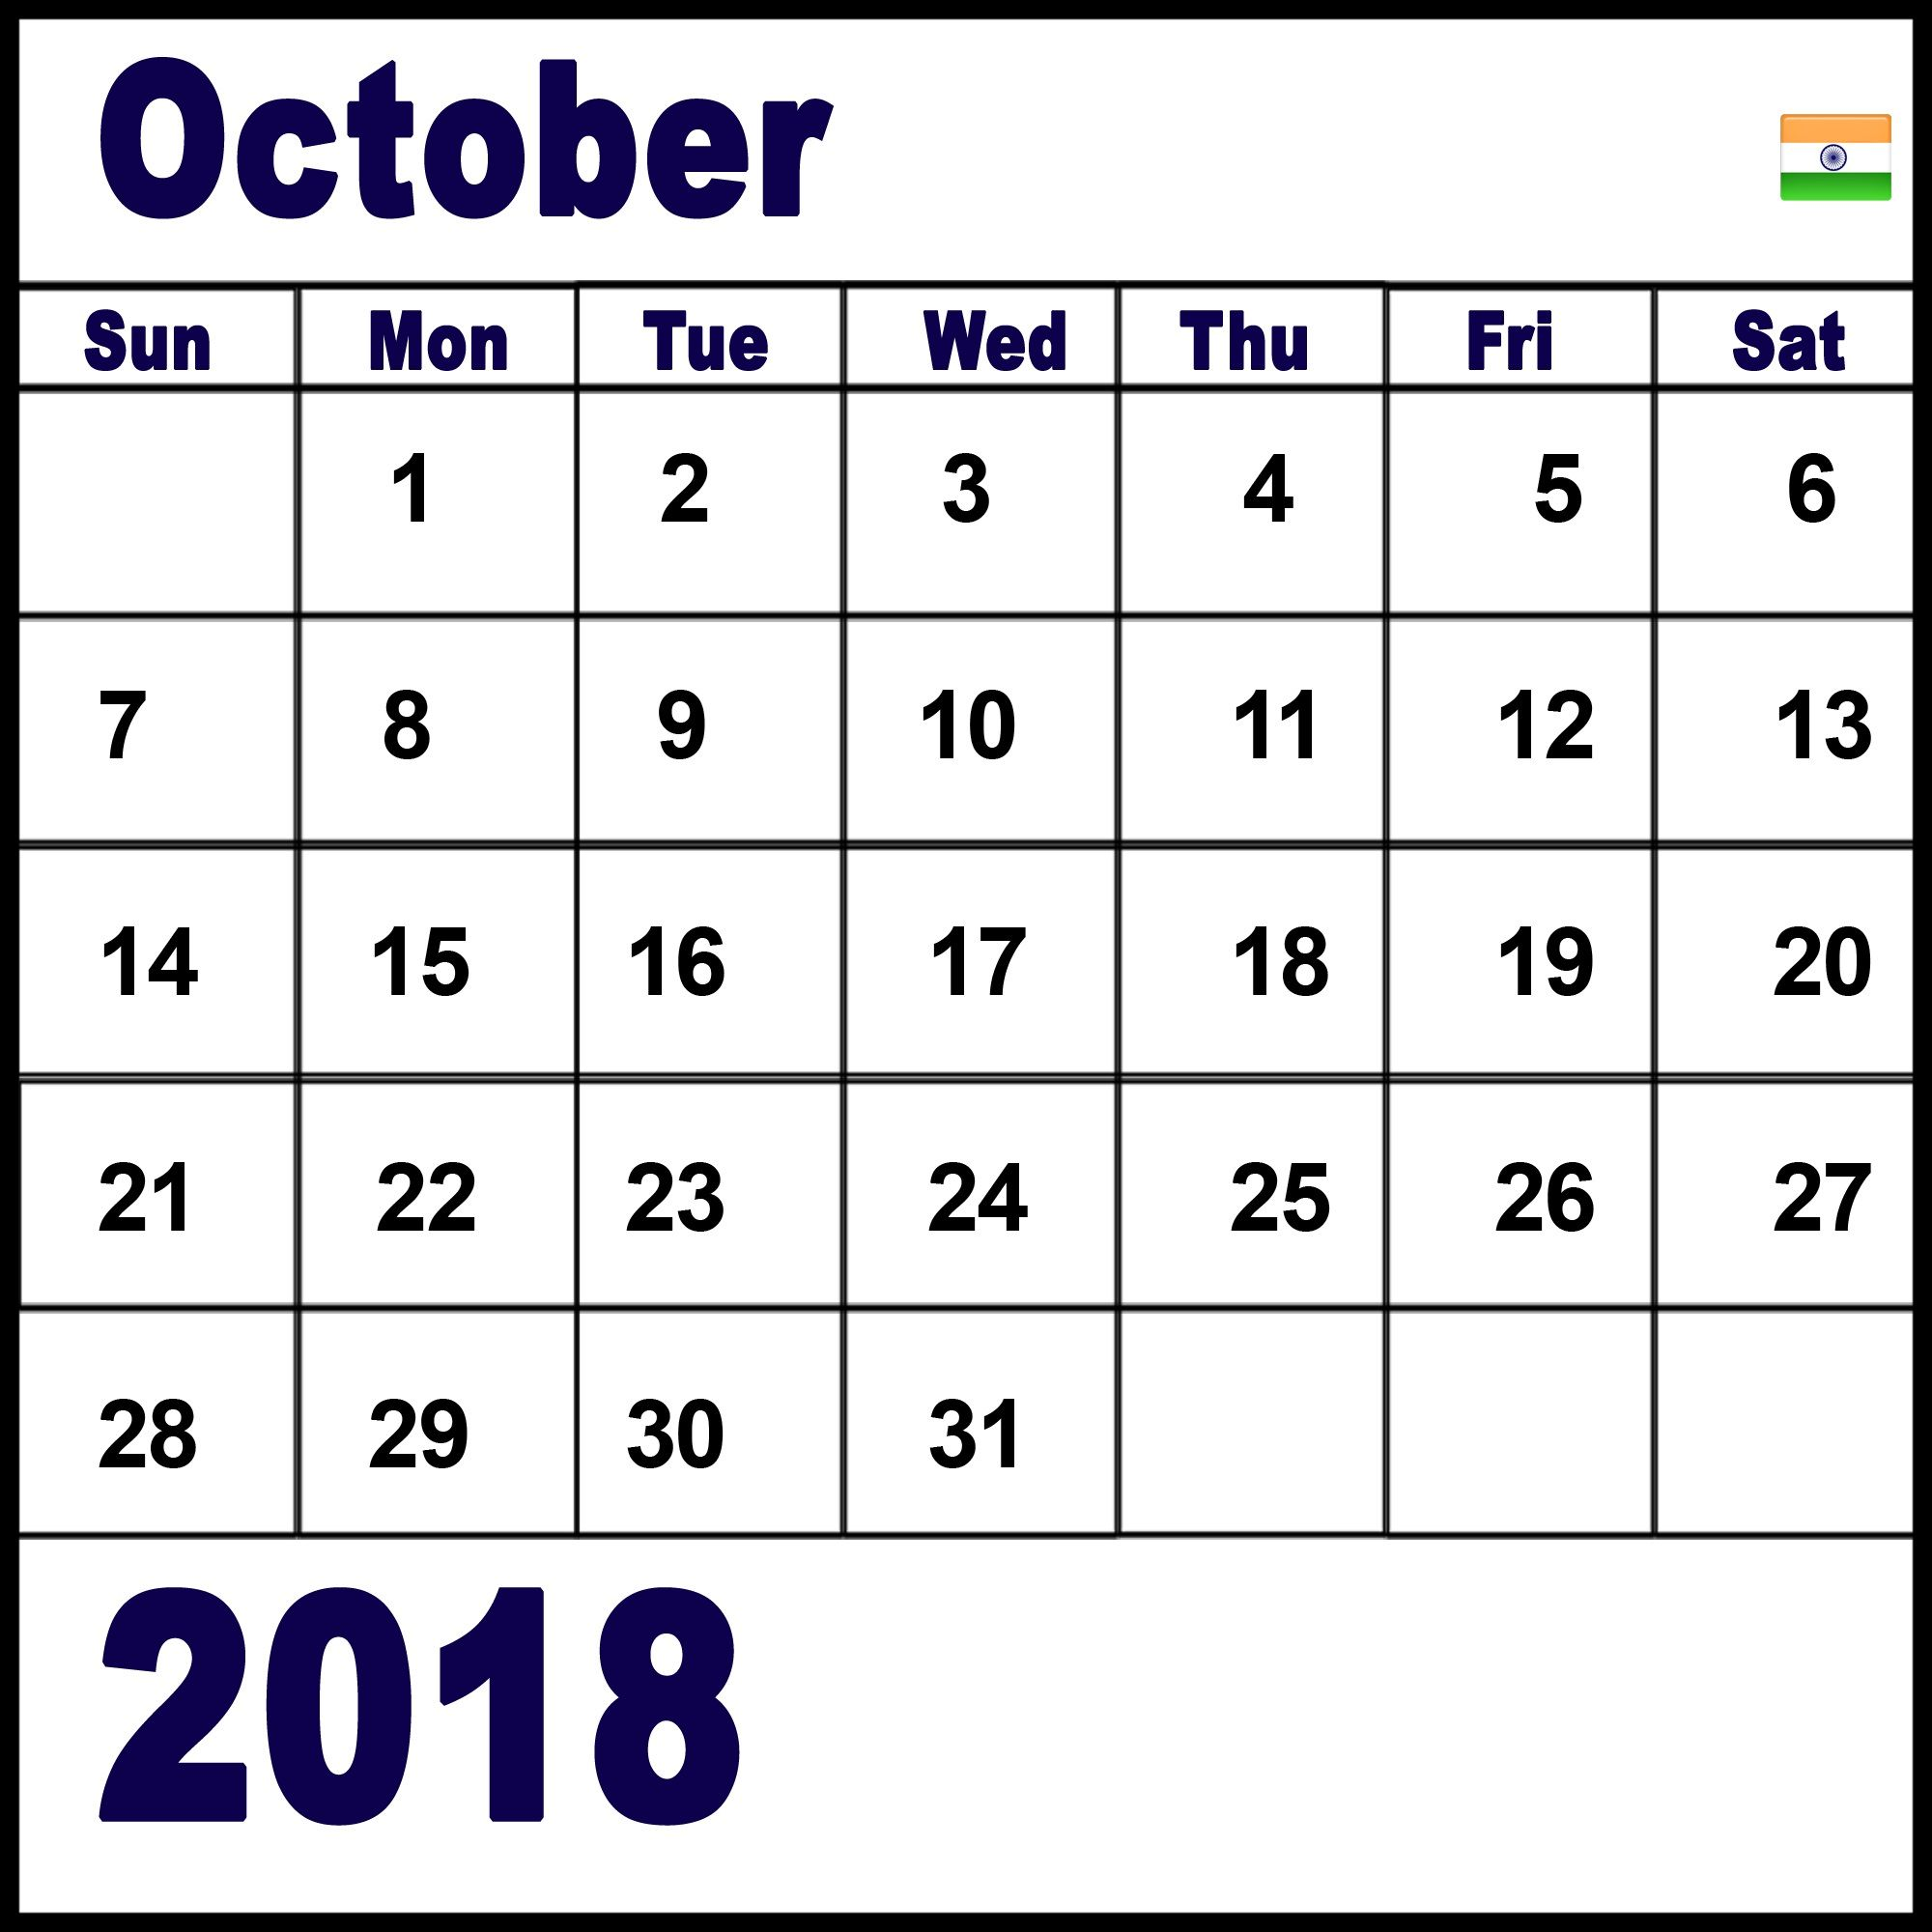 october 2018 calendar india it is easy to find out online for monthly and yearly timetable planner it is extremely hard to get a duplicate of these